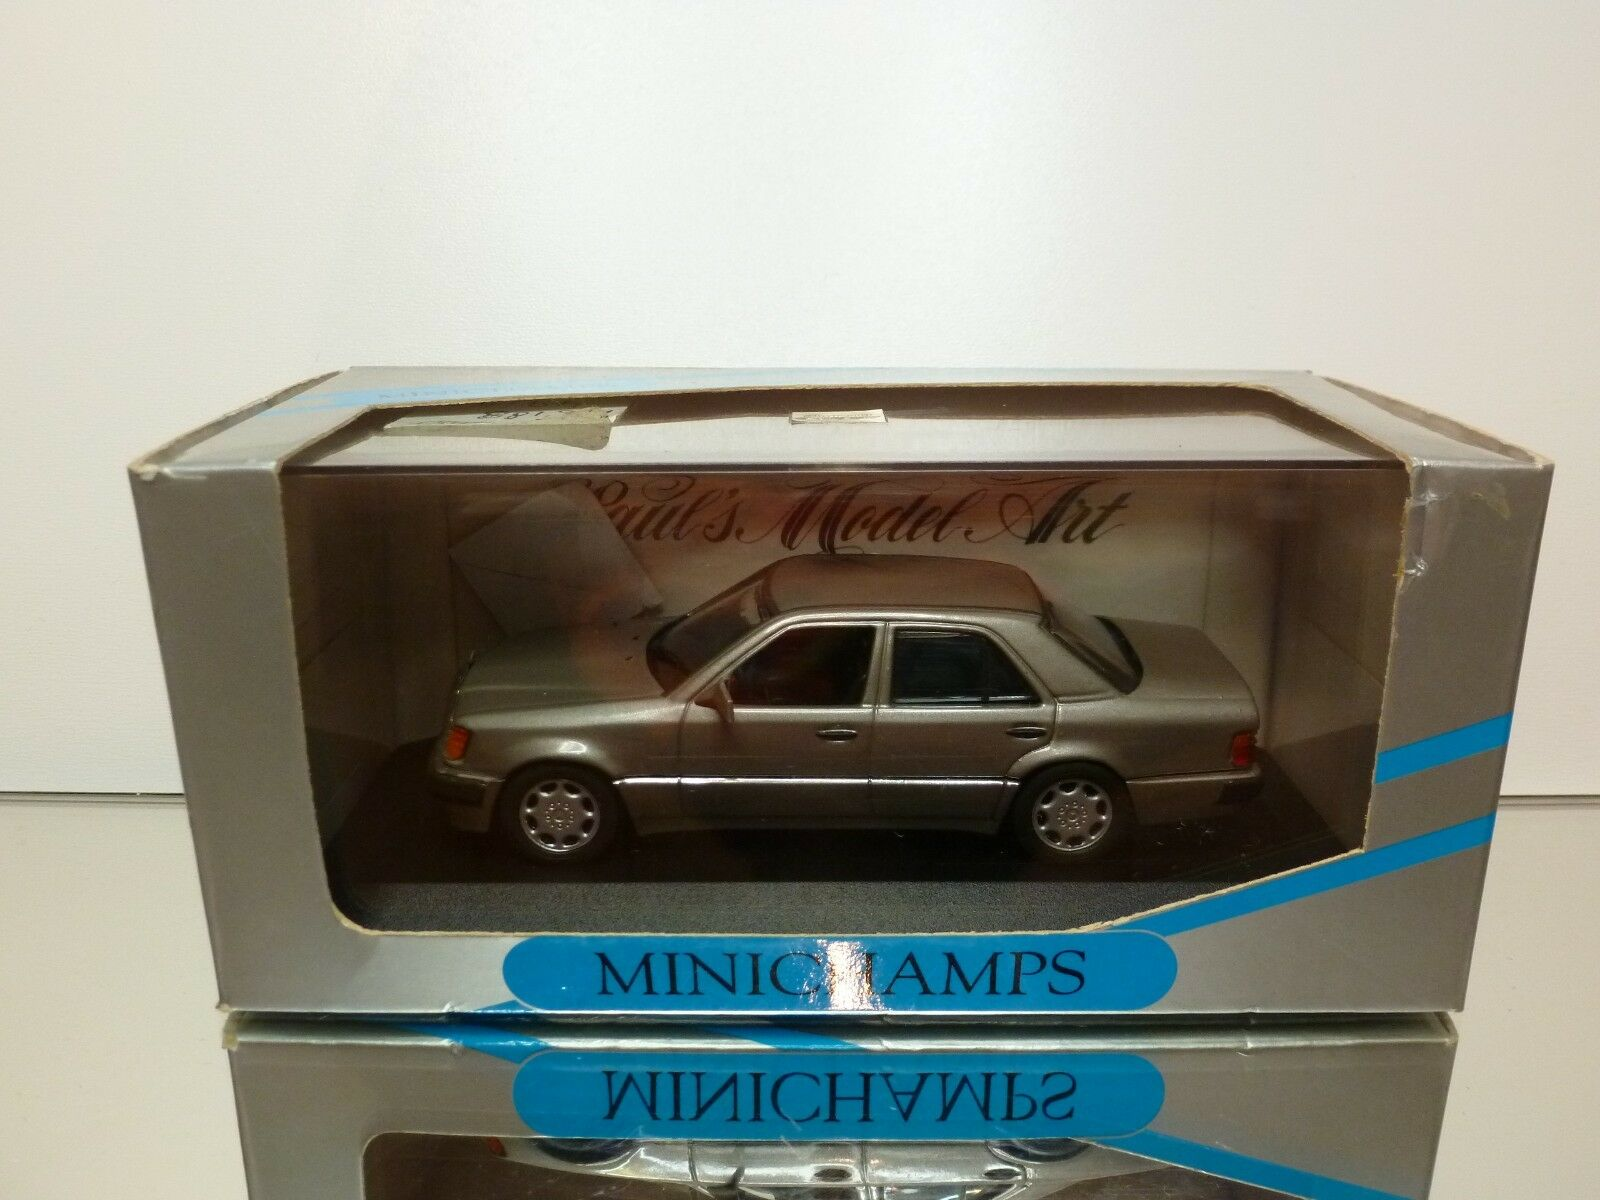 MINICHAMPS 3241 MERCEDES BENZ 500E V8 - ANTHRACITE 1 43 - EXCELLENT IN BOX